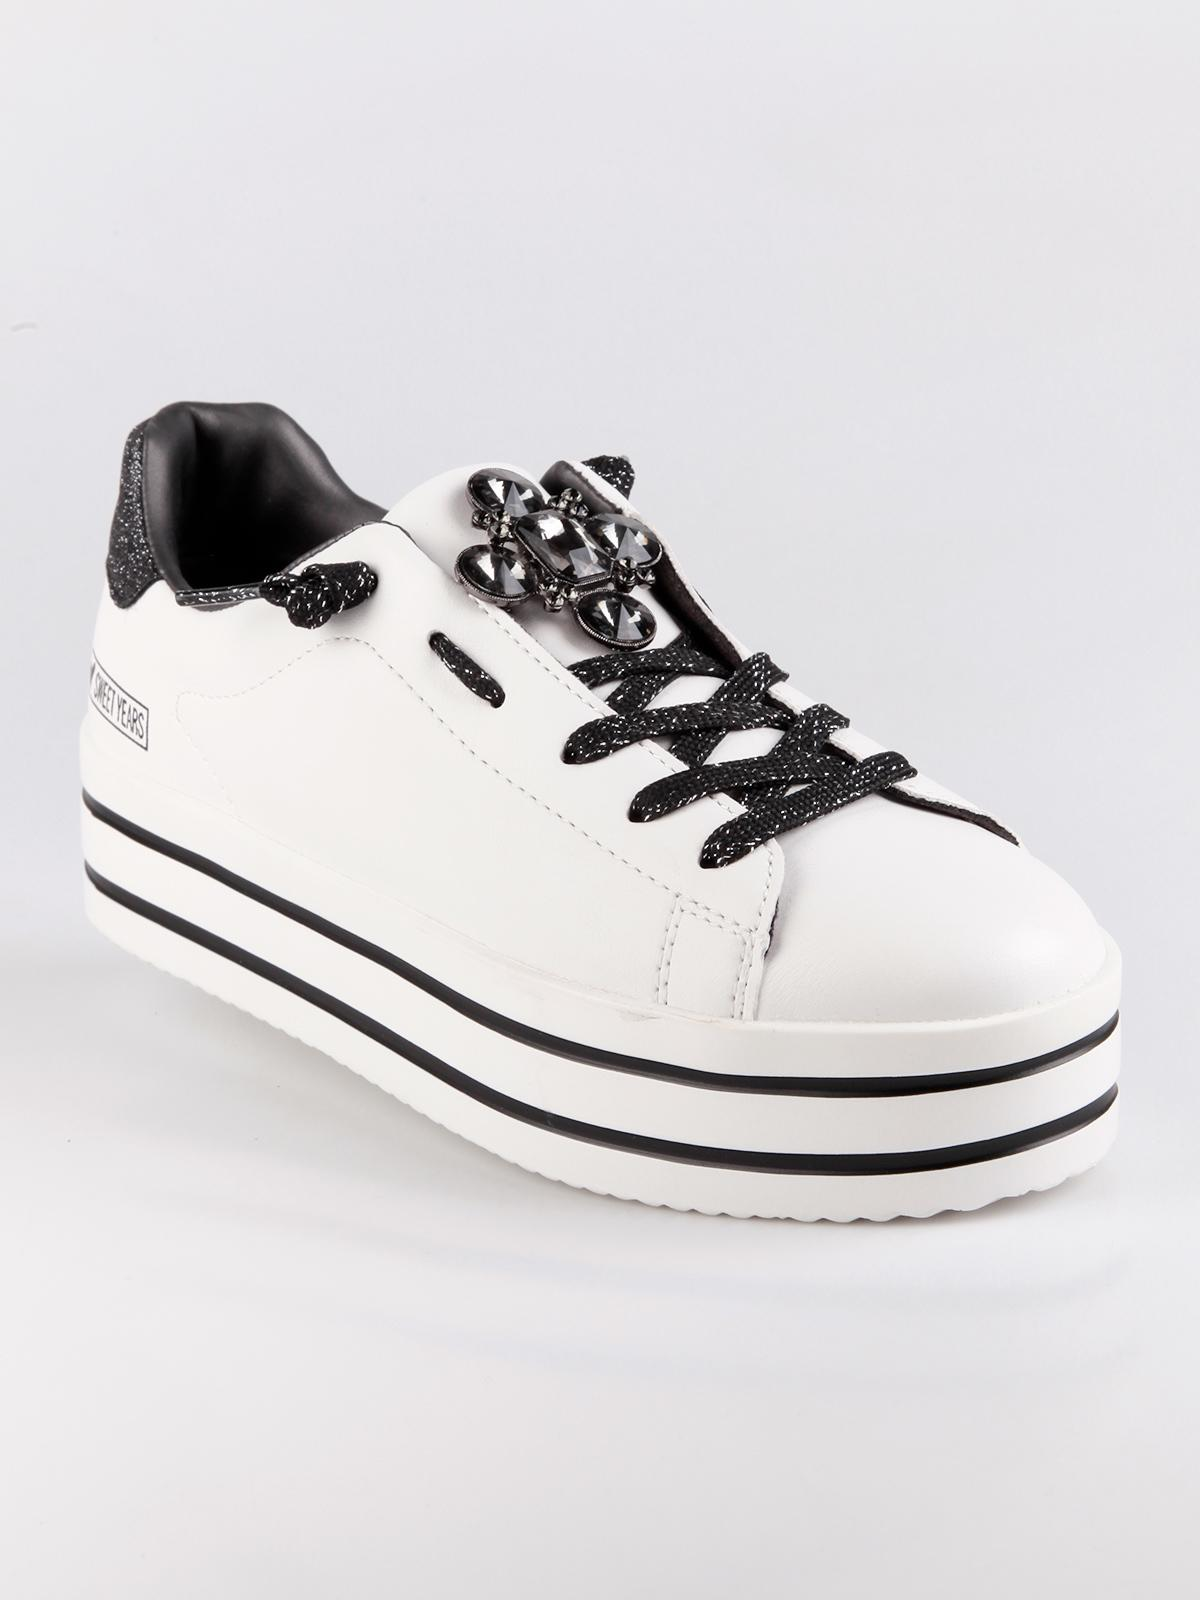 750ff7a529 Sneakers bianche con strass sweet years | MecShopping